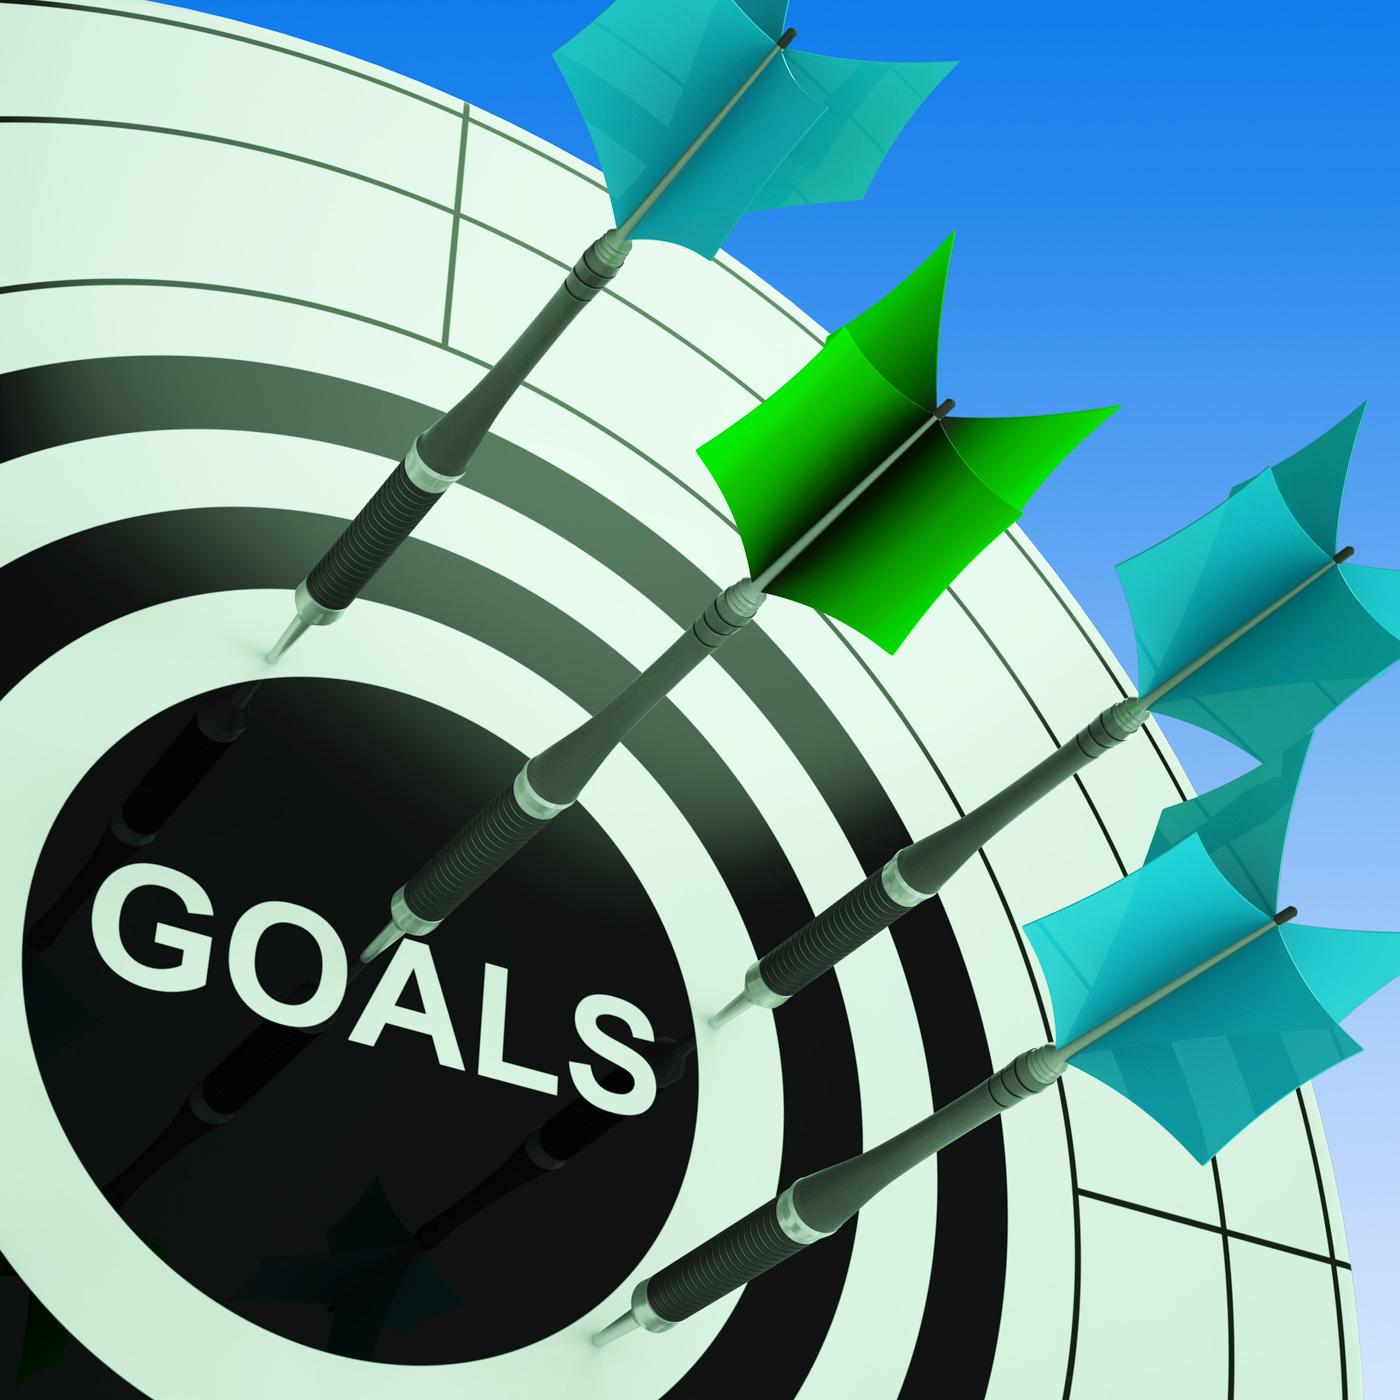 Goals On Dartboard Showing Future Plans, Inspiration, Targeting, Target, Strategy, HQ Photo